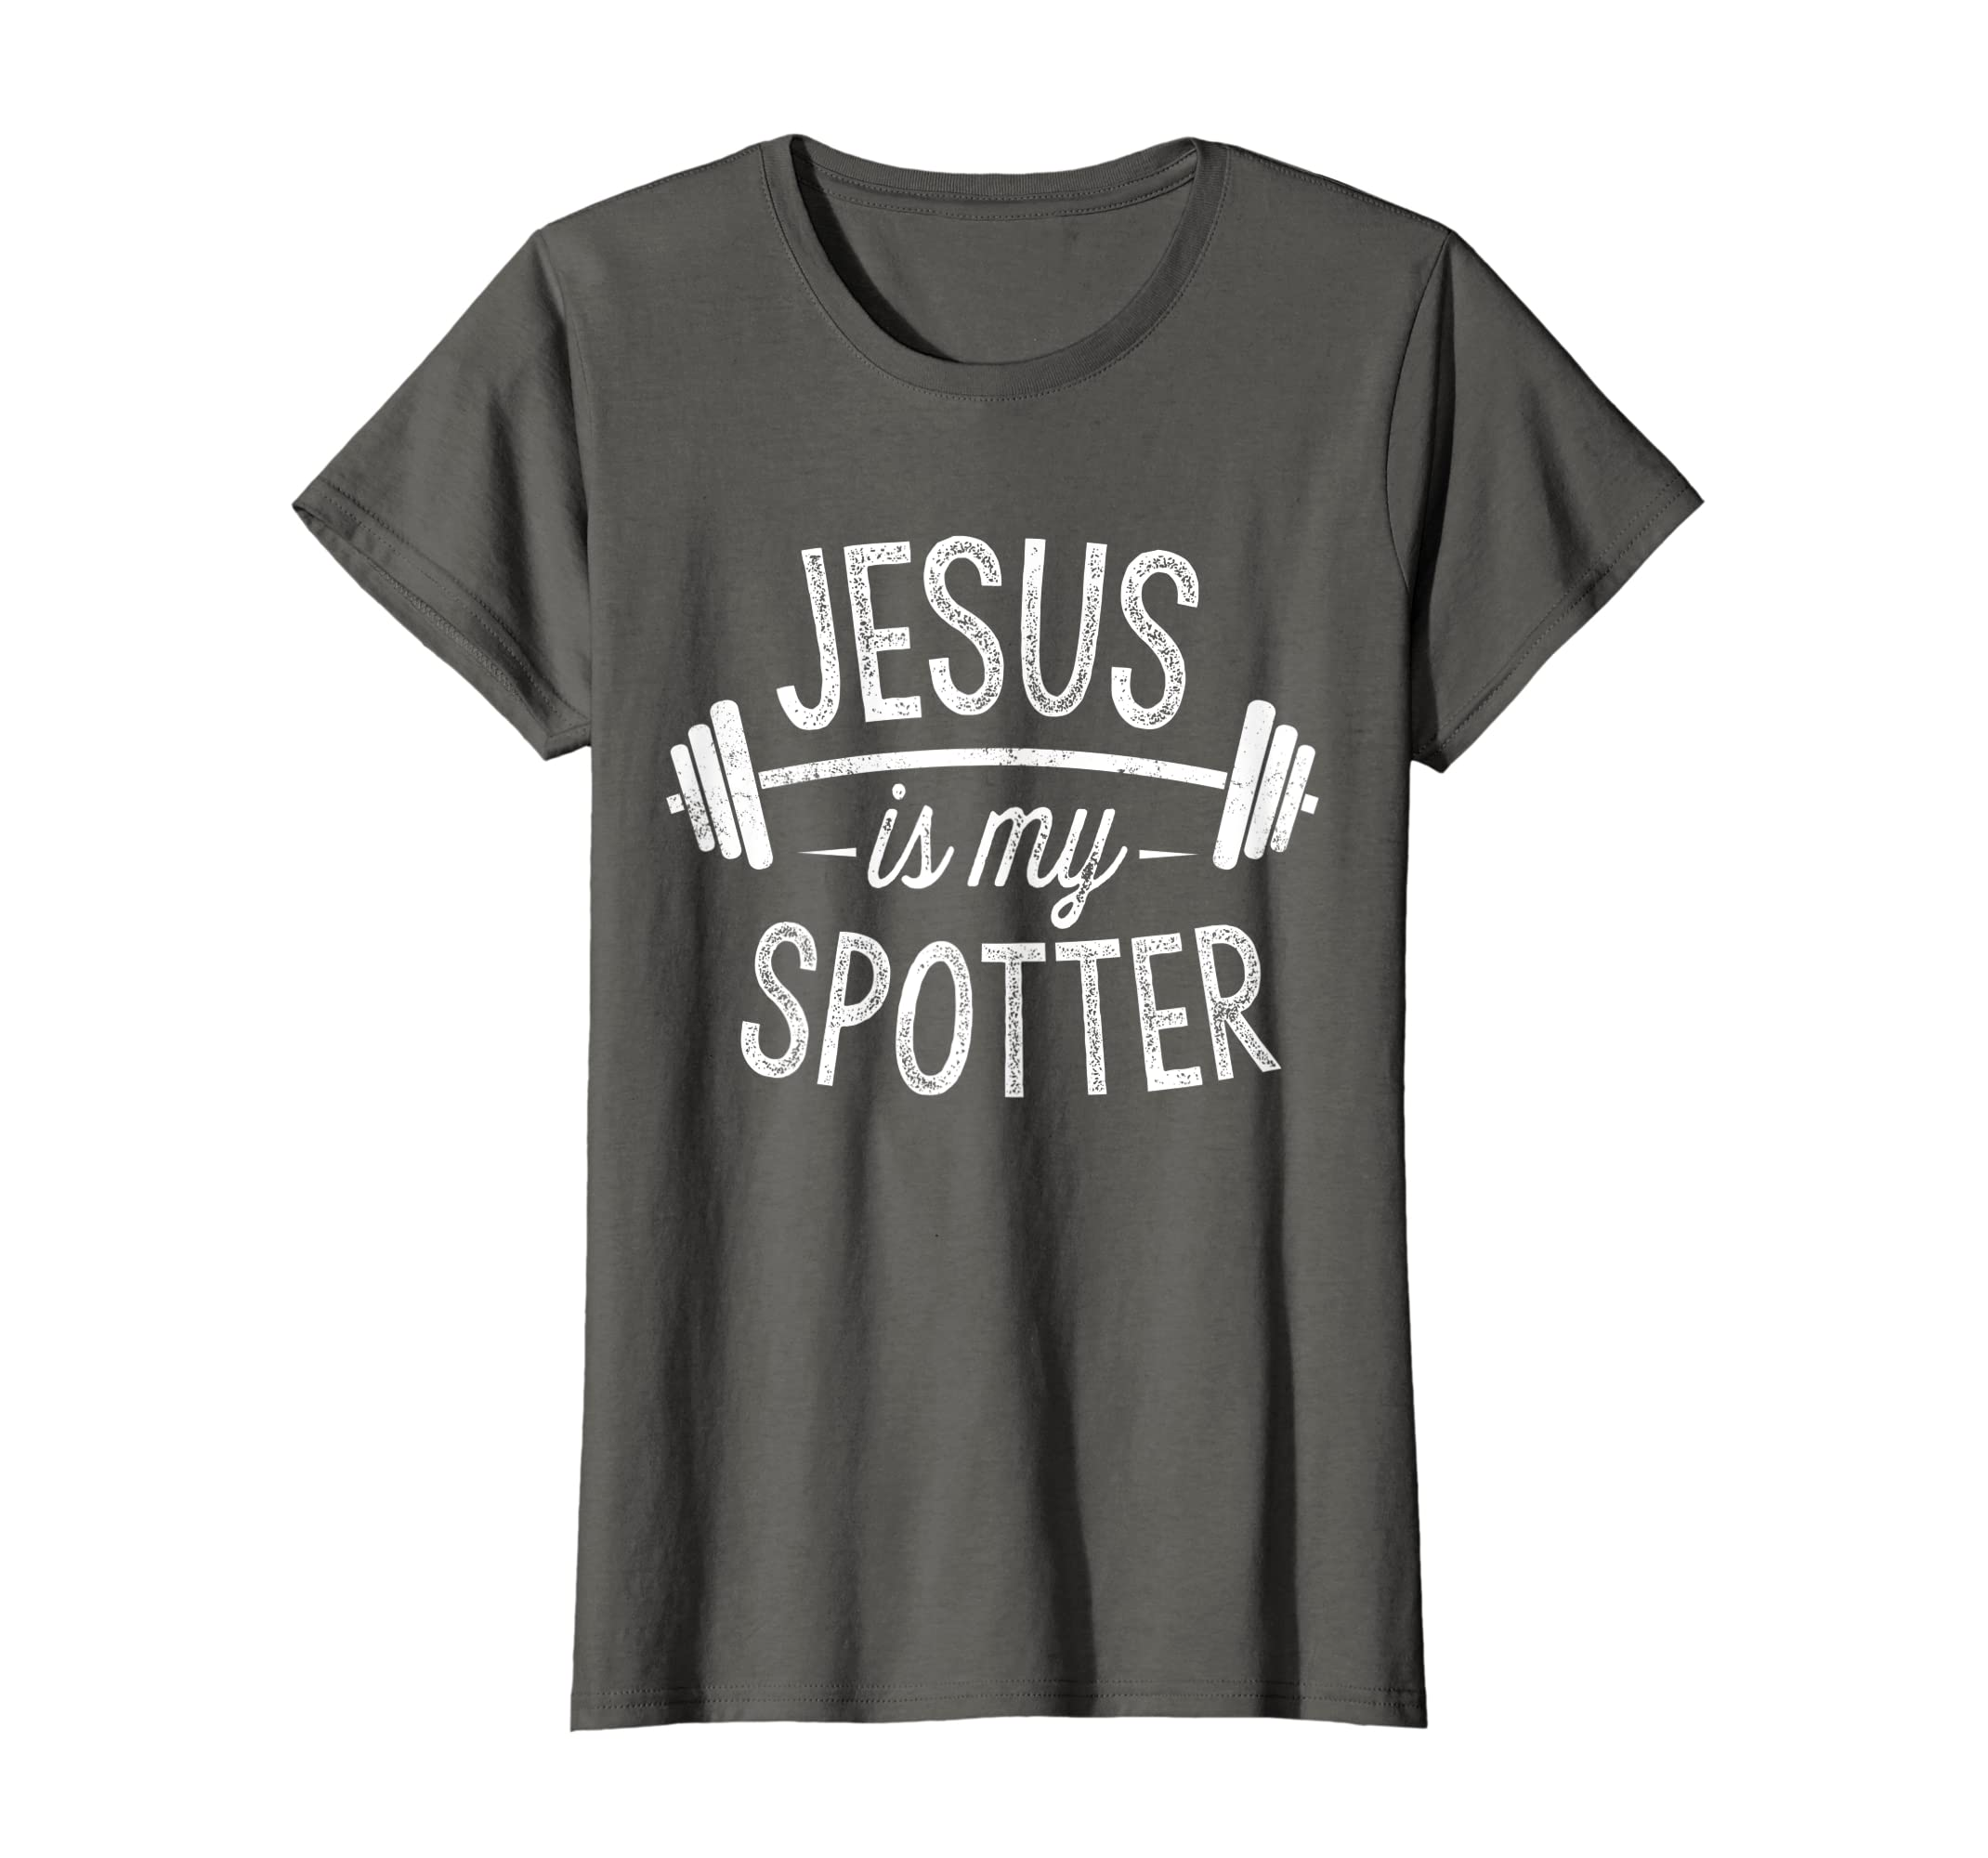 493852fd0 Amazon.com: Jesus Is My Spotter Shirt Funny Gym & Workout Christian Gift:  Clothing